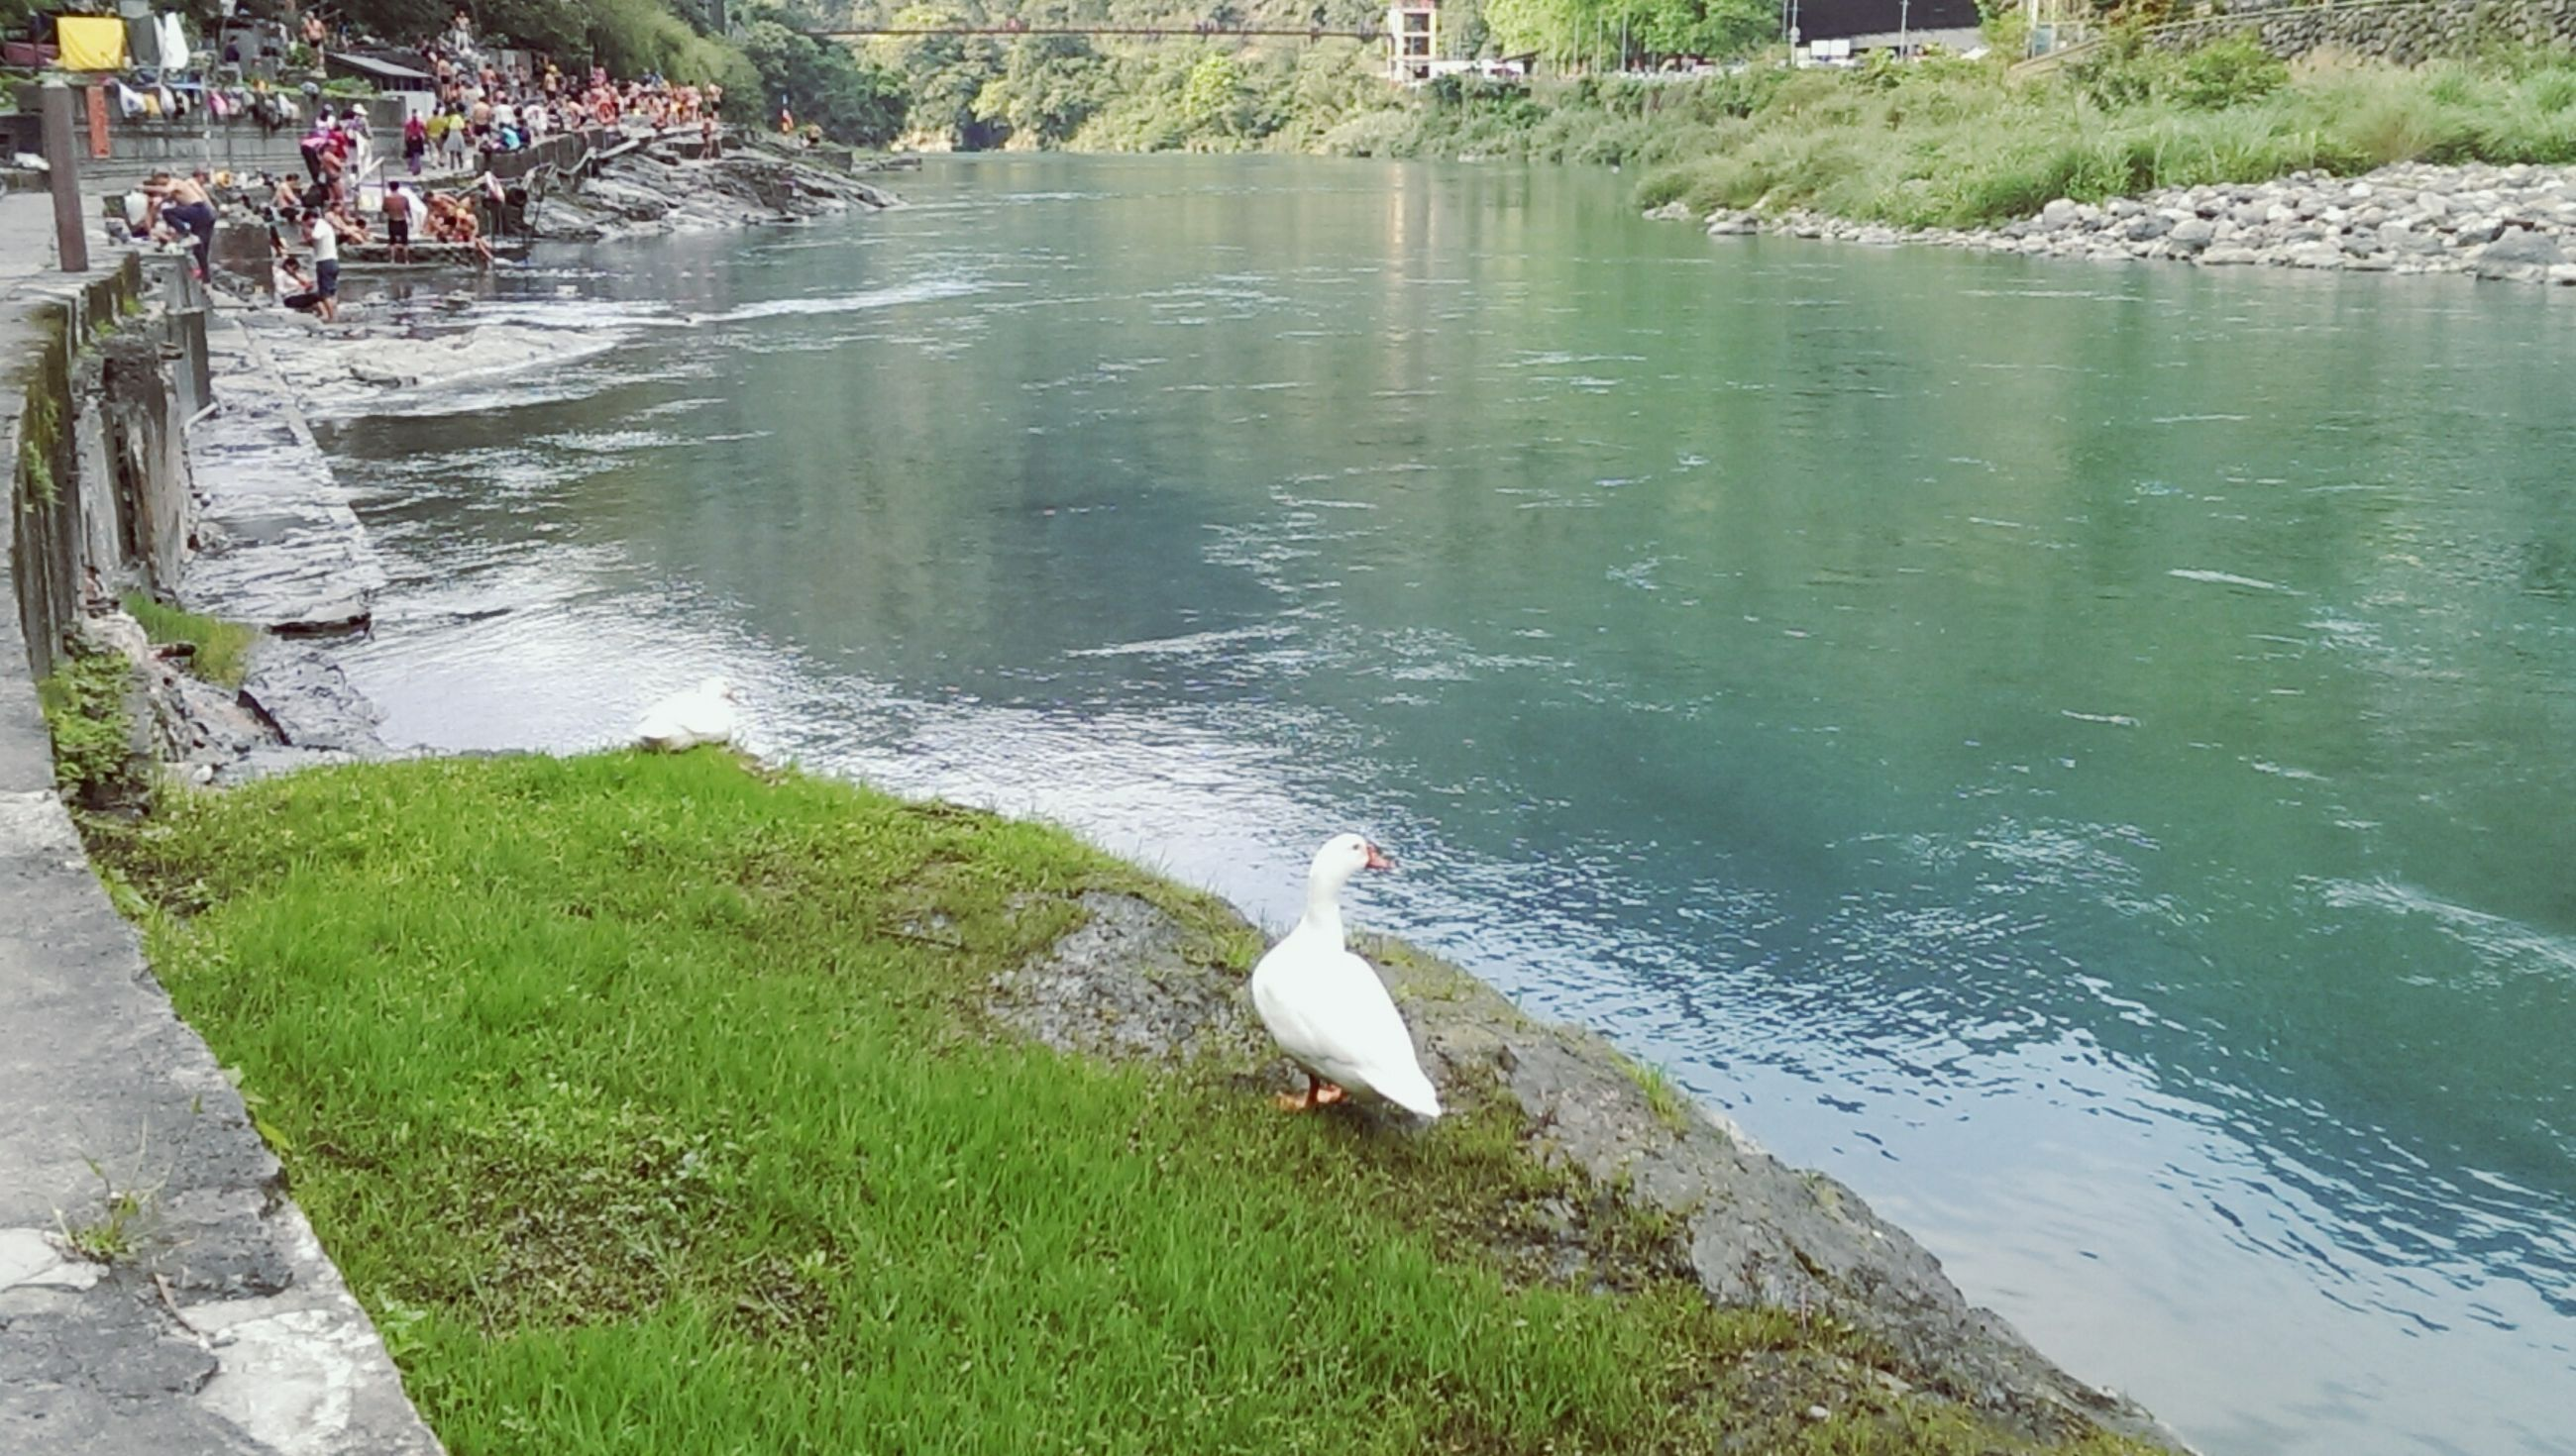 animal themes, water, bird, animals in the wild, wildlife, swimming, swan, duck, lake, high angle view, pond, park - man made space, nature, two animals, outdoors, day, rippled, grass, sunlight, water bird